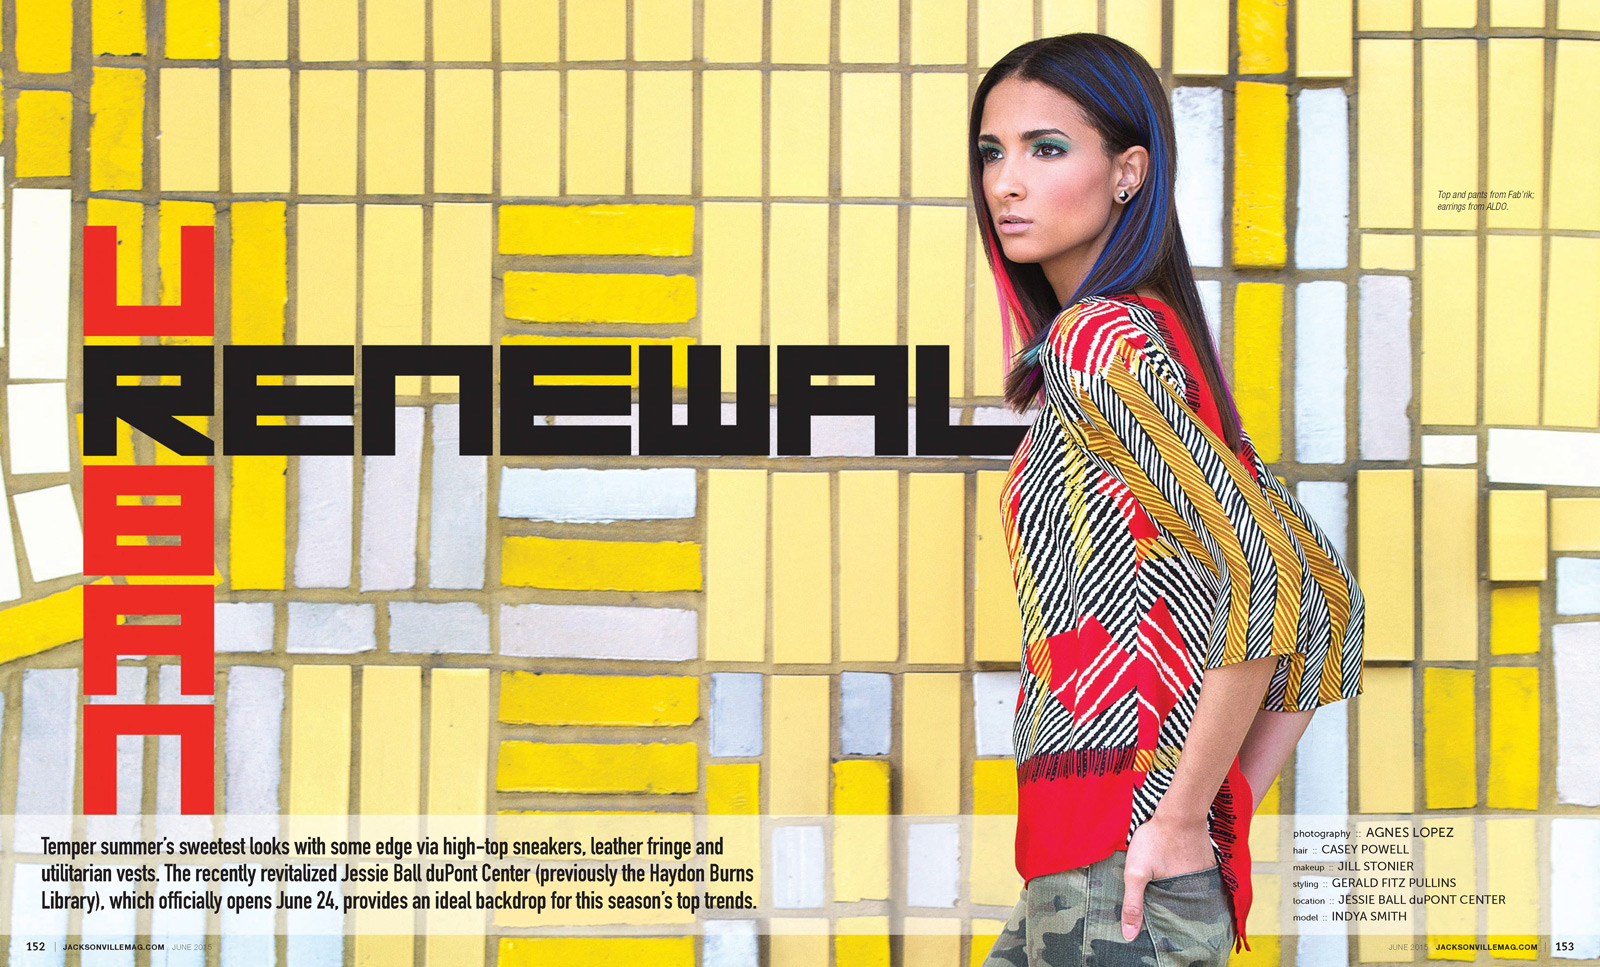 Jacksonville-Magazine-June-2015-Urban-Renewal-Fashion-Editorial-by-Agnes-Lopez-0001@2x